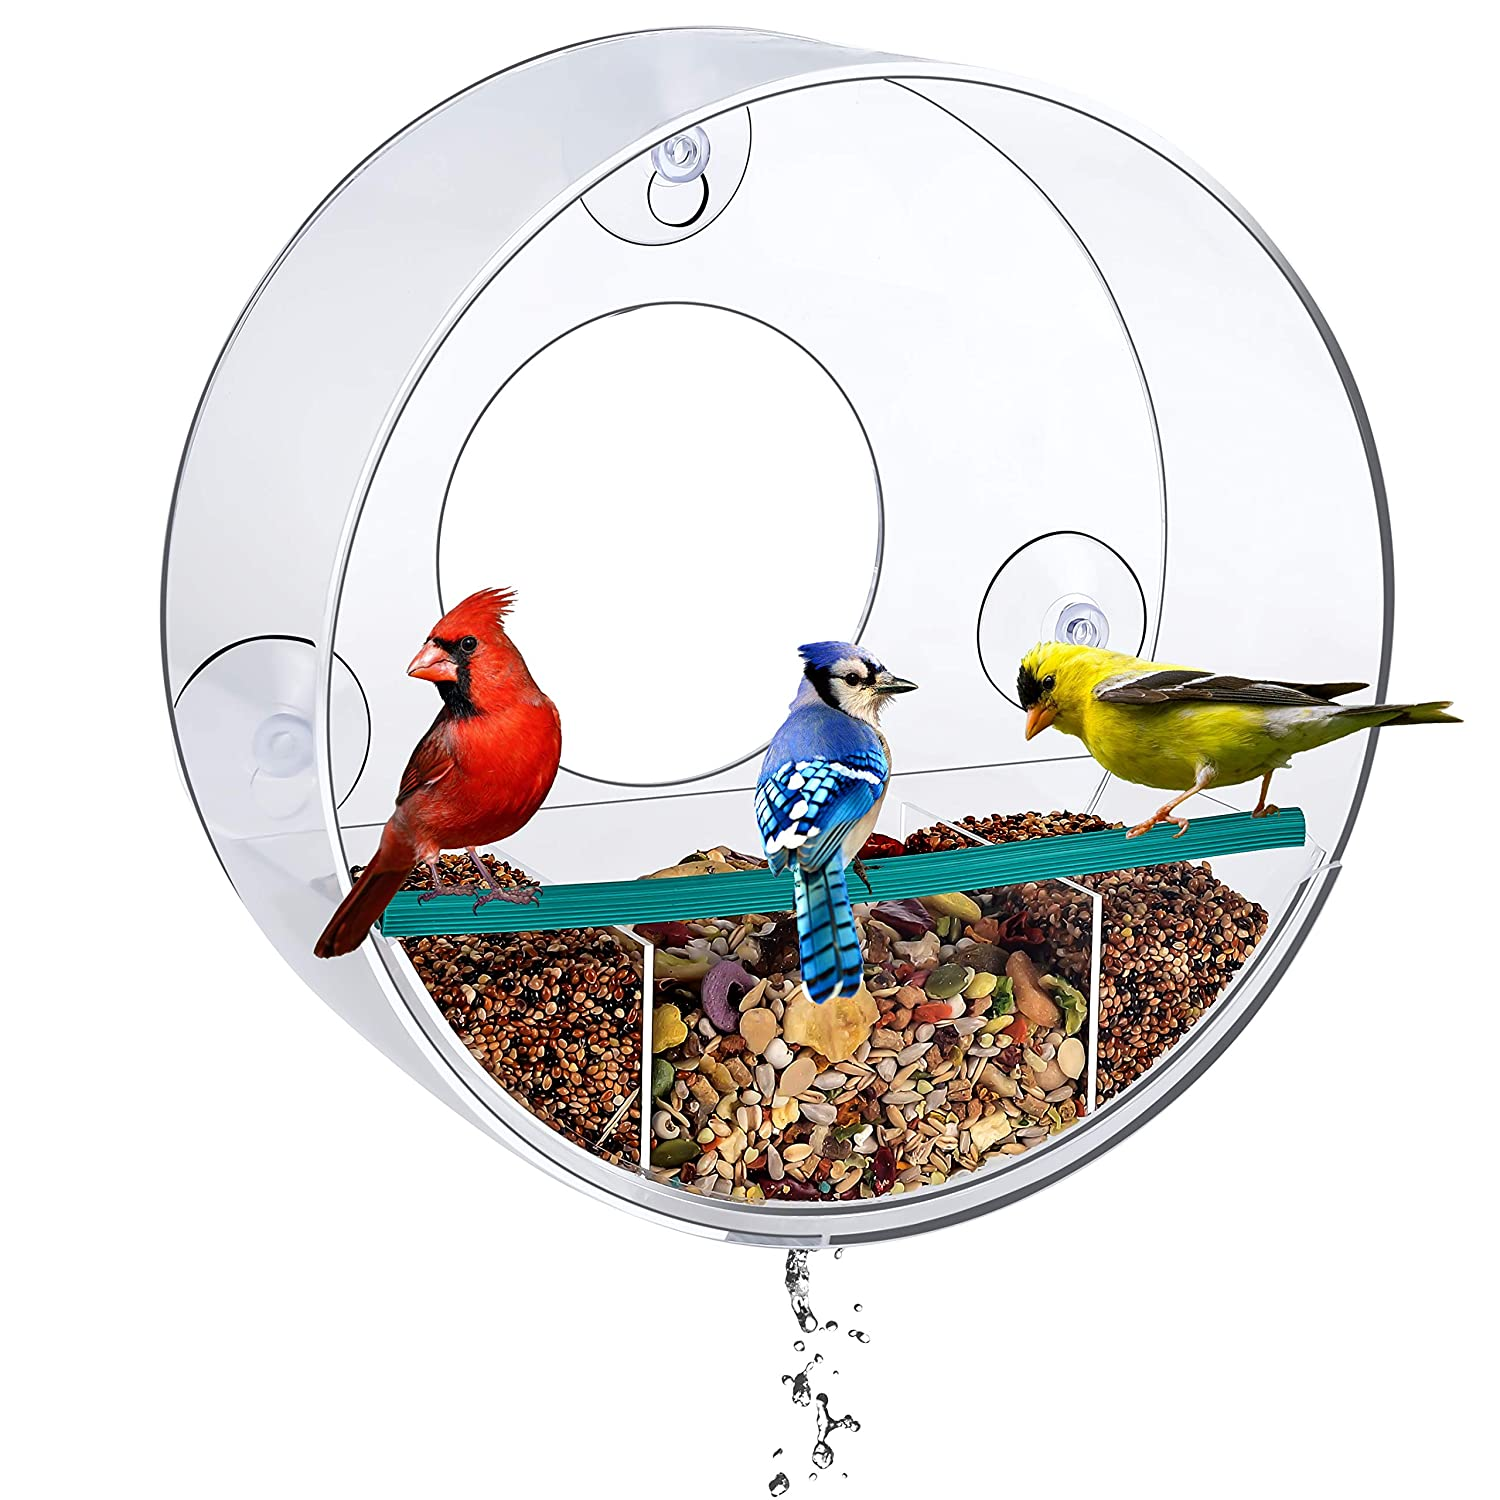 Birdious Tube Window Bird Feeder with Strong Suction Cups and Removable Tray: Watch Wild Backyard Birds from Your House- Clear, See Through, Large Birdfeeder for Outside- Best Gift Idea